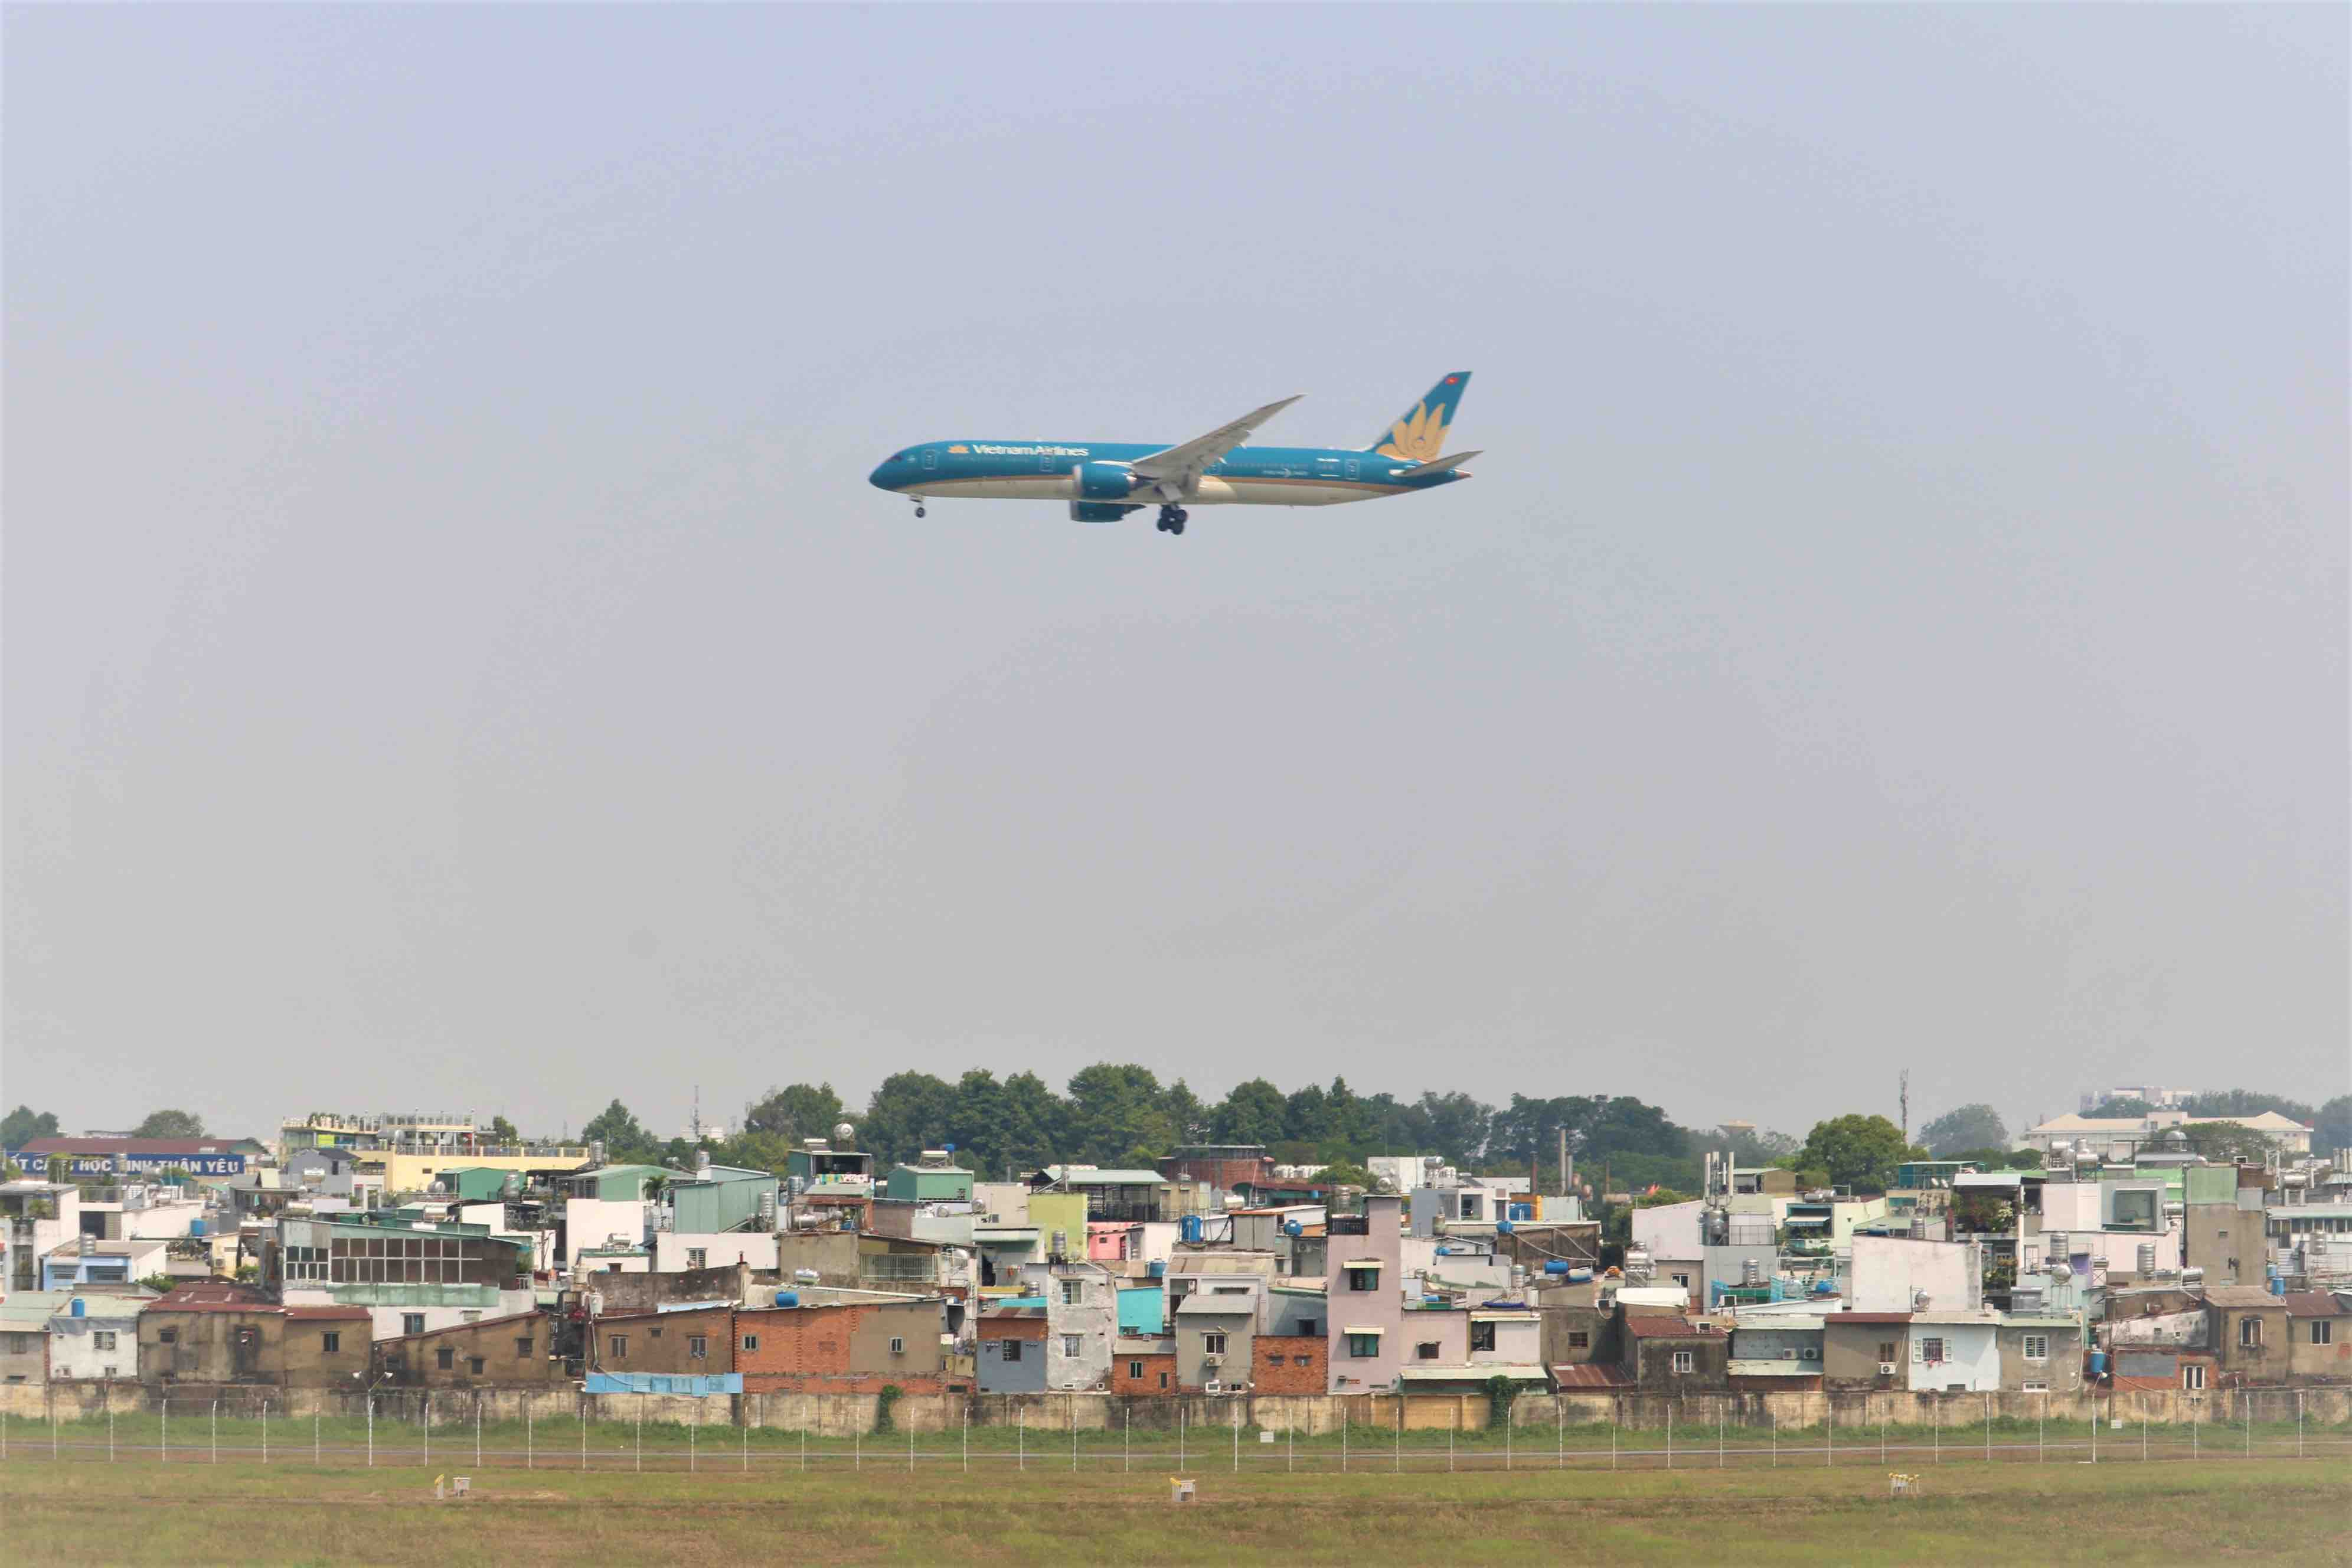 A Vietnam Airlines plane is seen from Phen's café in Go Vap District, Ho Chi Minh City on March 16, 2021. Photo: Hoang An / Tuoi Tre